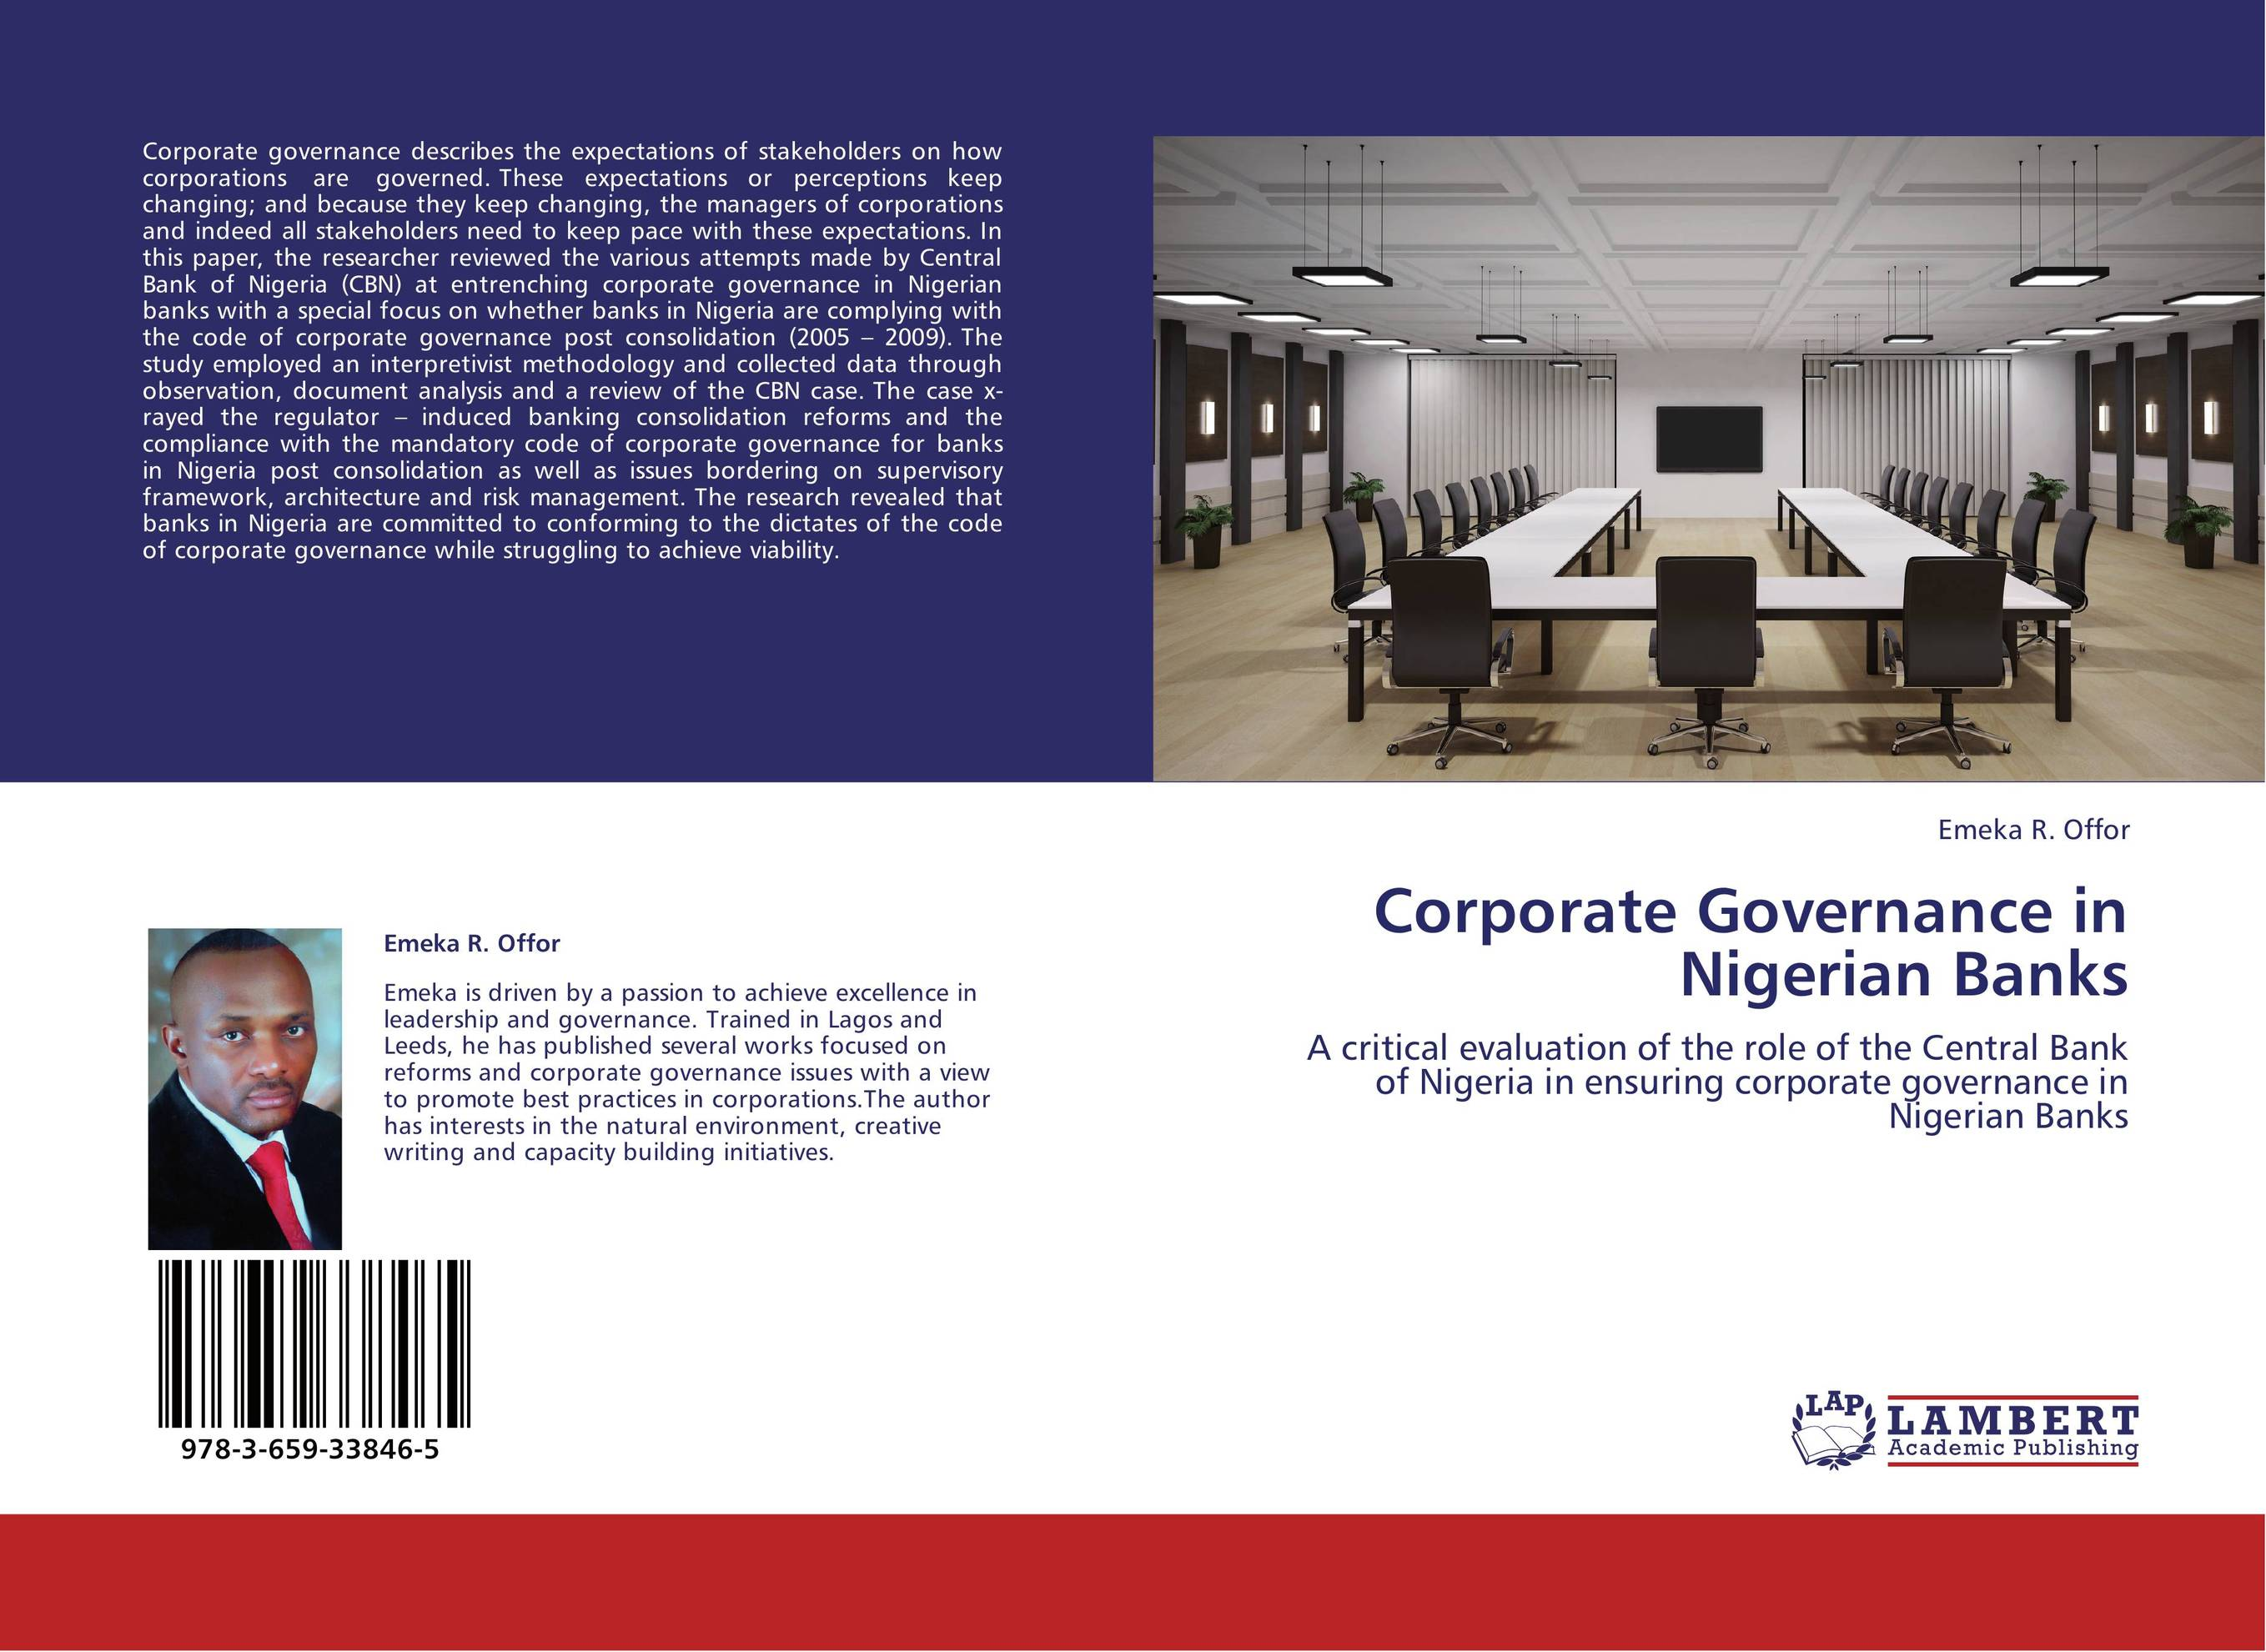 corporate governance in nigeria banks Instilling the rules of corporate governance in the private and public sectors is the only way to fight corruption if you step on big toes, that is when people get investigated and punished, but it is different in other countries like the united kingdom, the country i know best after nigeria.